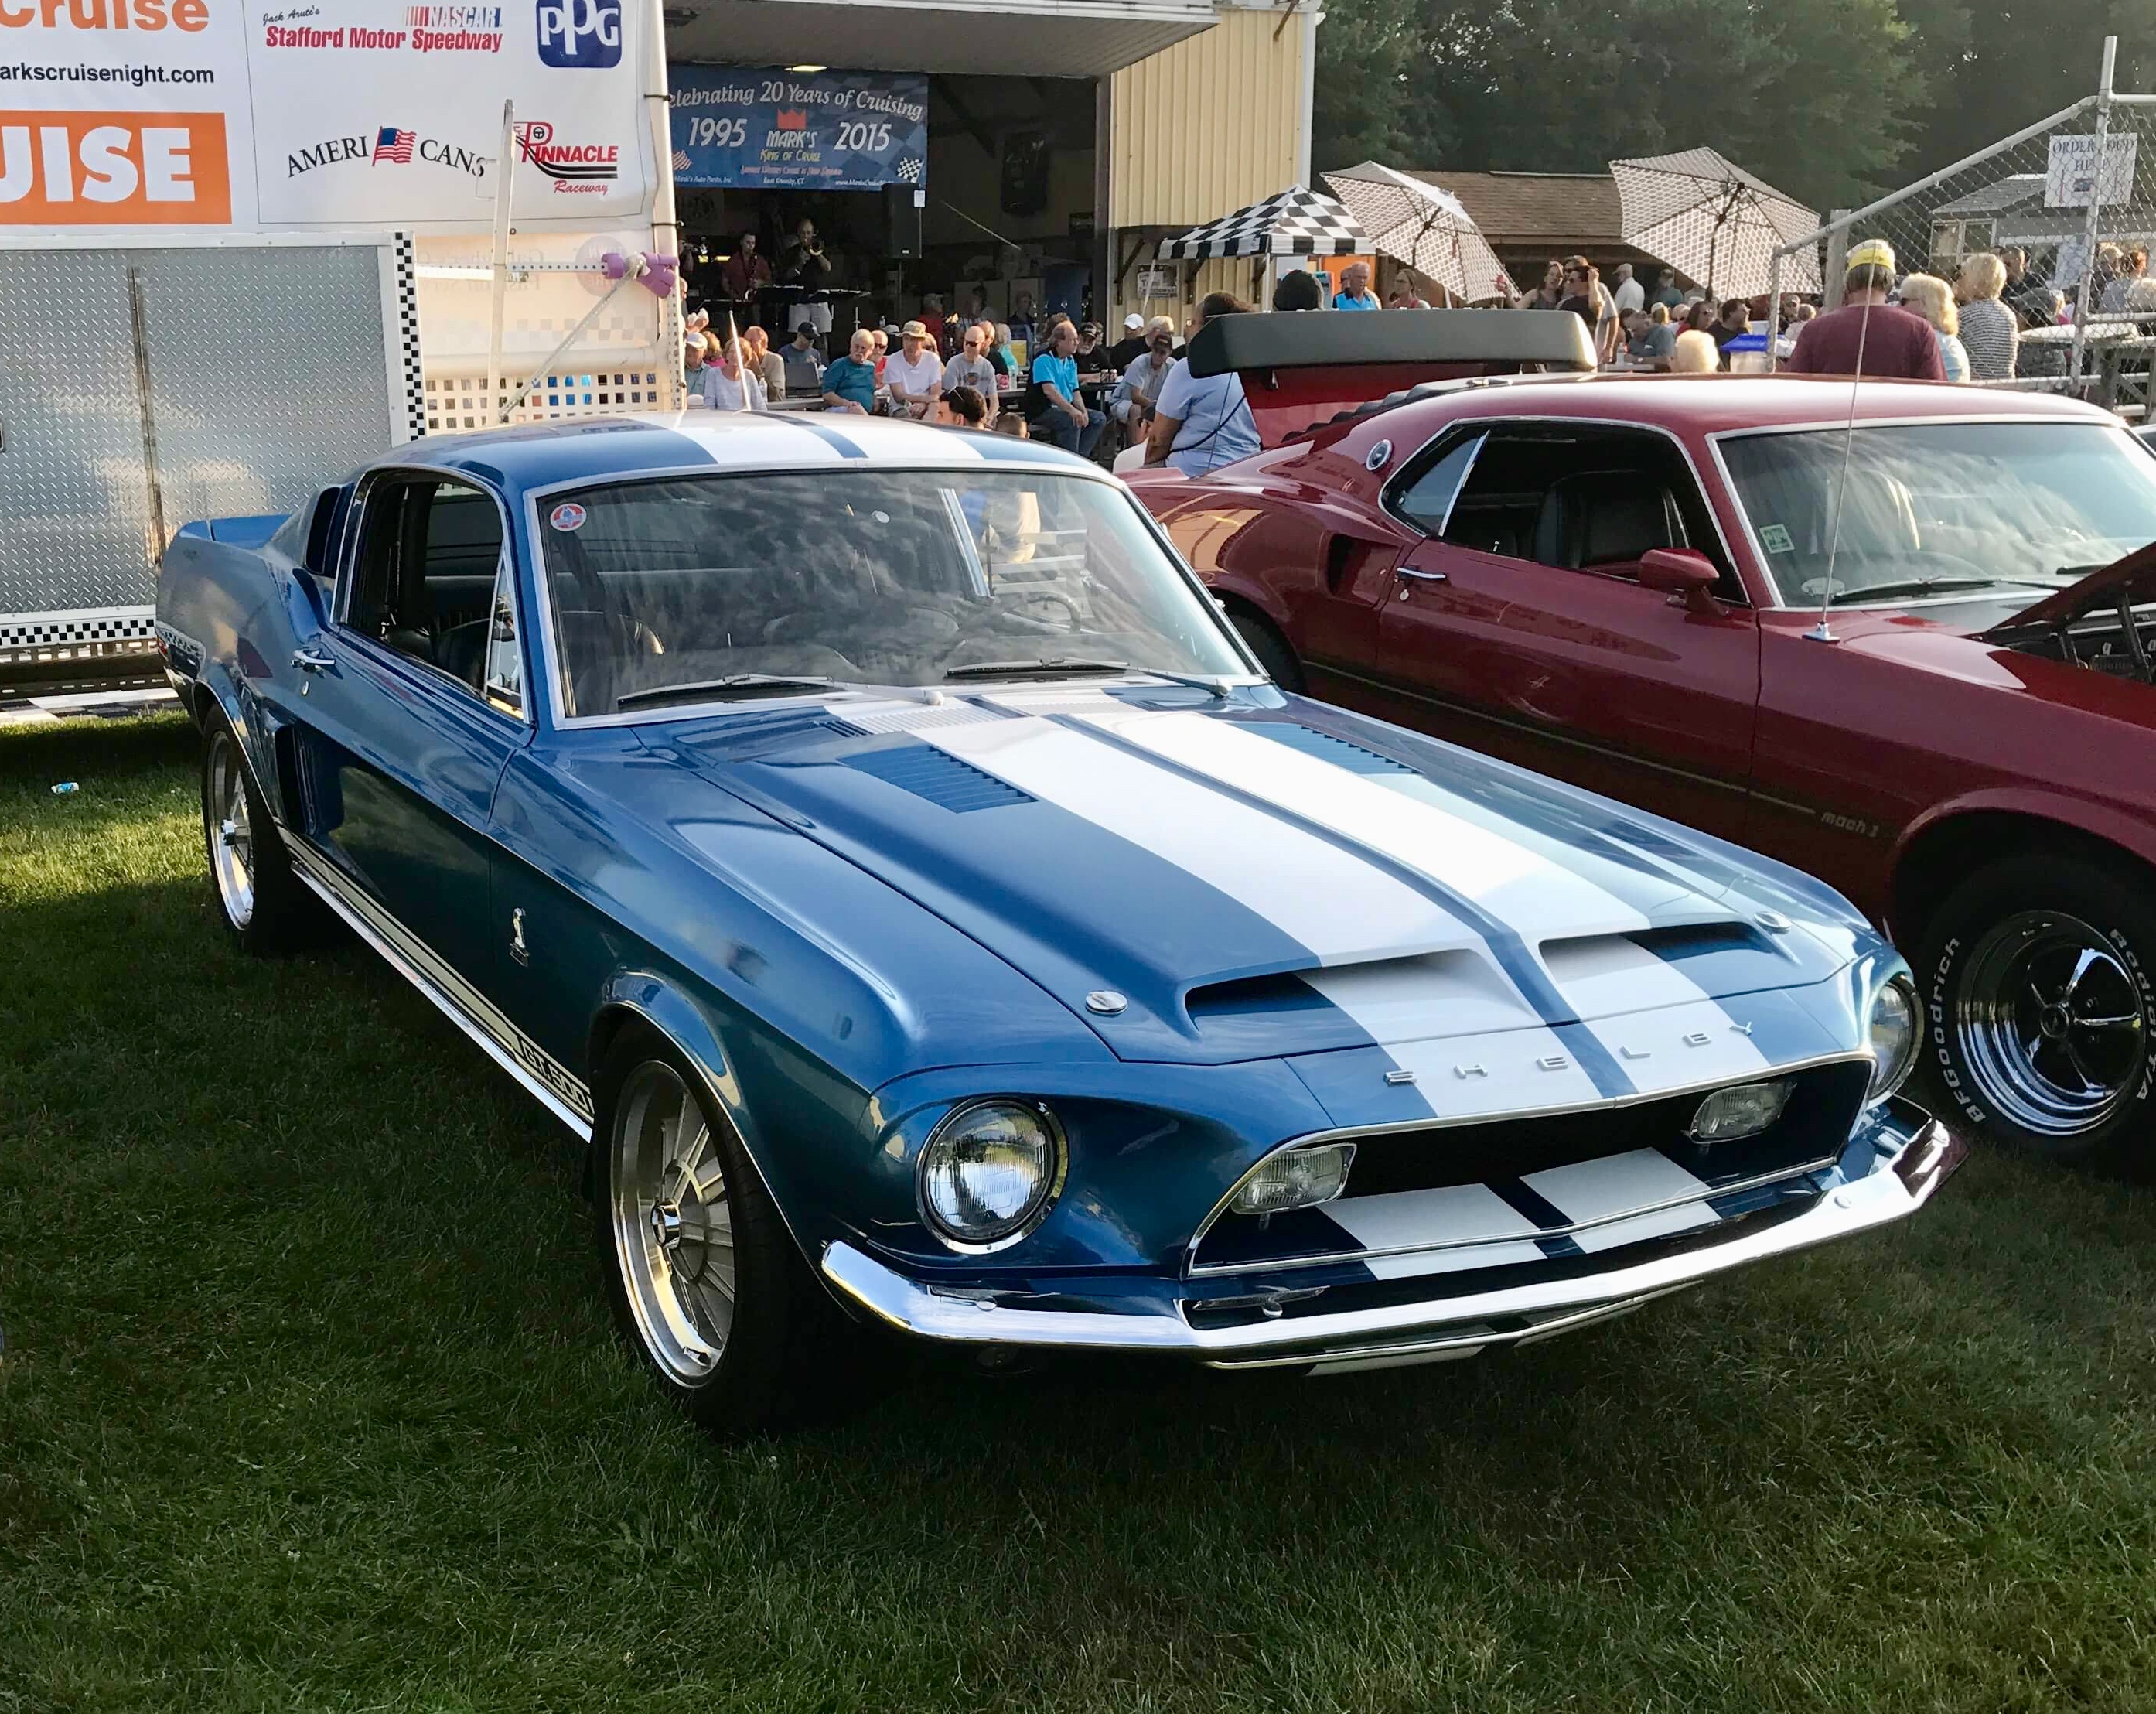 1968 Mustang Shelby